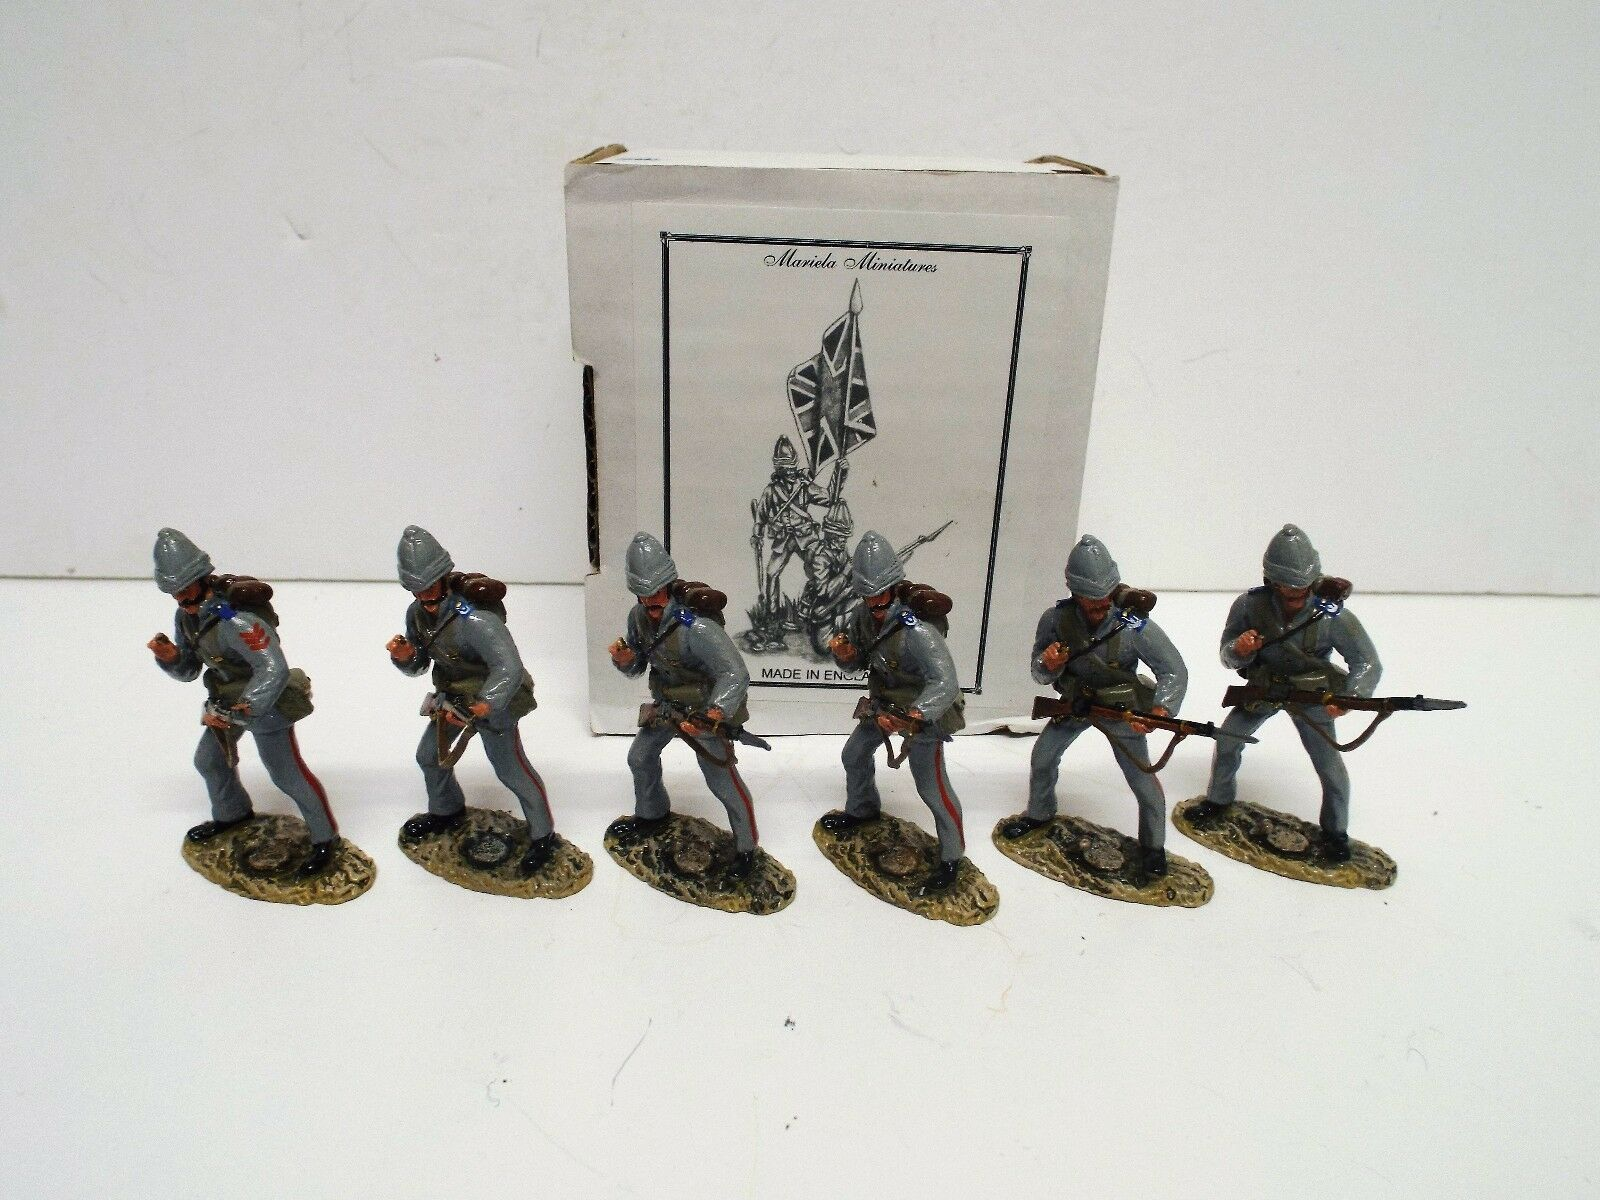 MARIELA MINIATURES 6 X 1884 ROYAL MARINES LIGHT INFANTRY SET BOXED. (BS2341)